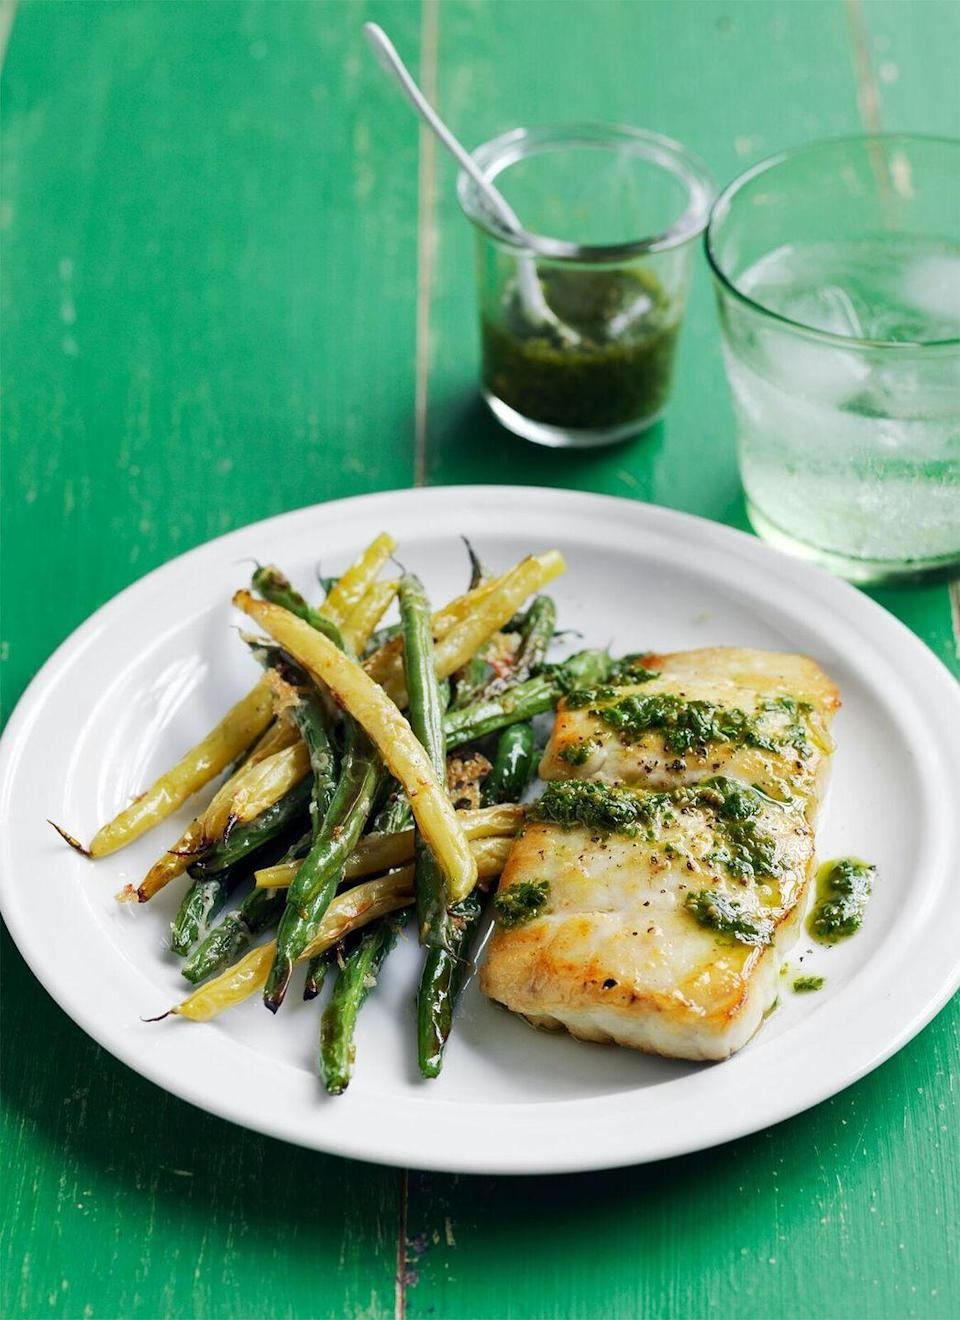 "<p>Freshen up your dinner menu with pan-seared fish and pesto.</p><p><a href=""https://www.womansday.com/food-recipes/food-drinks/recipes/a55777/cod-with-crispy-green-beans-recipe/"" rel=""nofollow noopener"" target=""_blank"" data-ylk=""slk:Get the Cod with Crispy Green Beans recipe."" class=""link rapid-noclick-resp""><em><strong>Get the Cod with Crispy Green Beans recipe.</strong></em></a></p>"